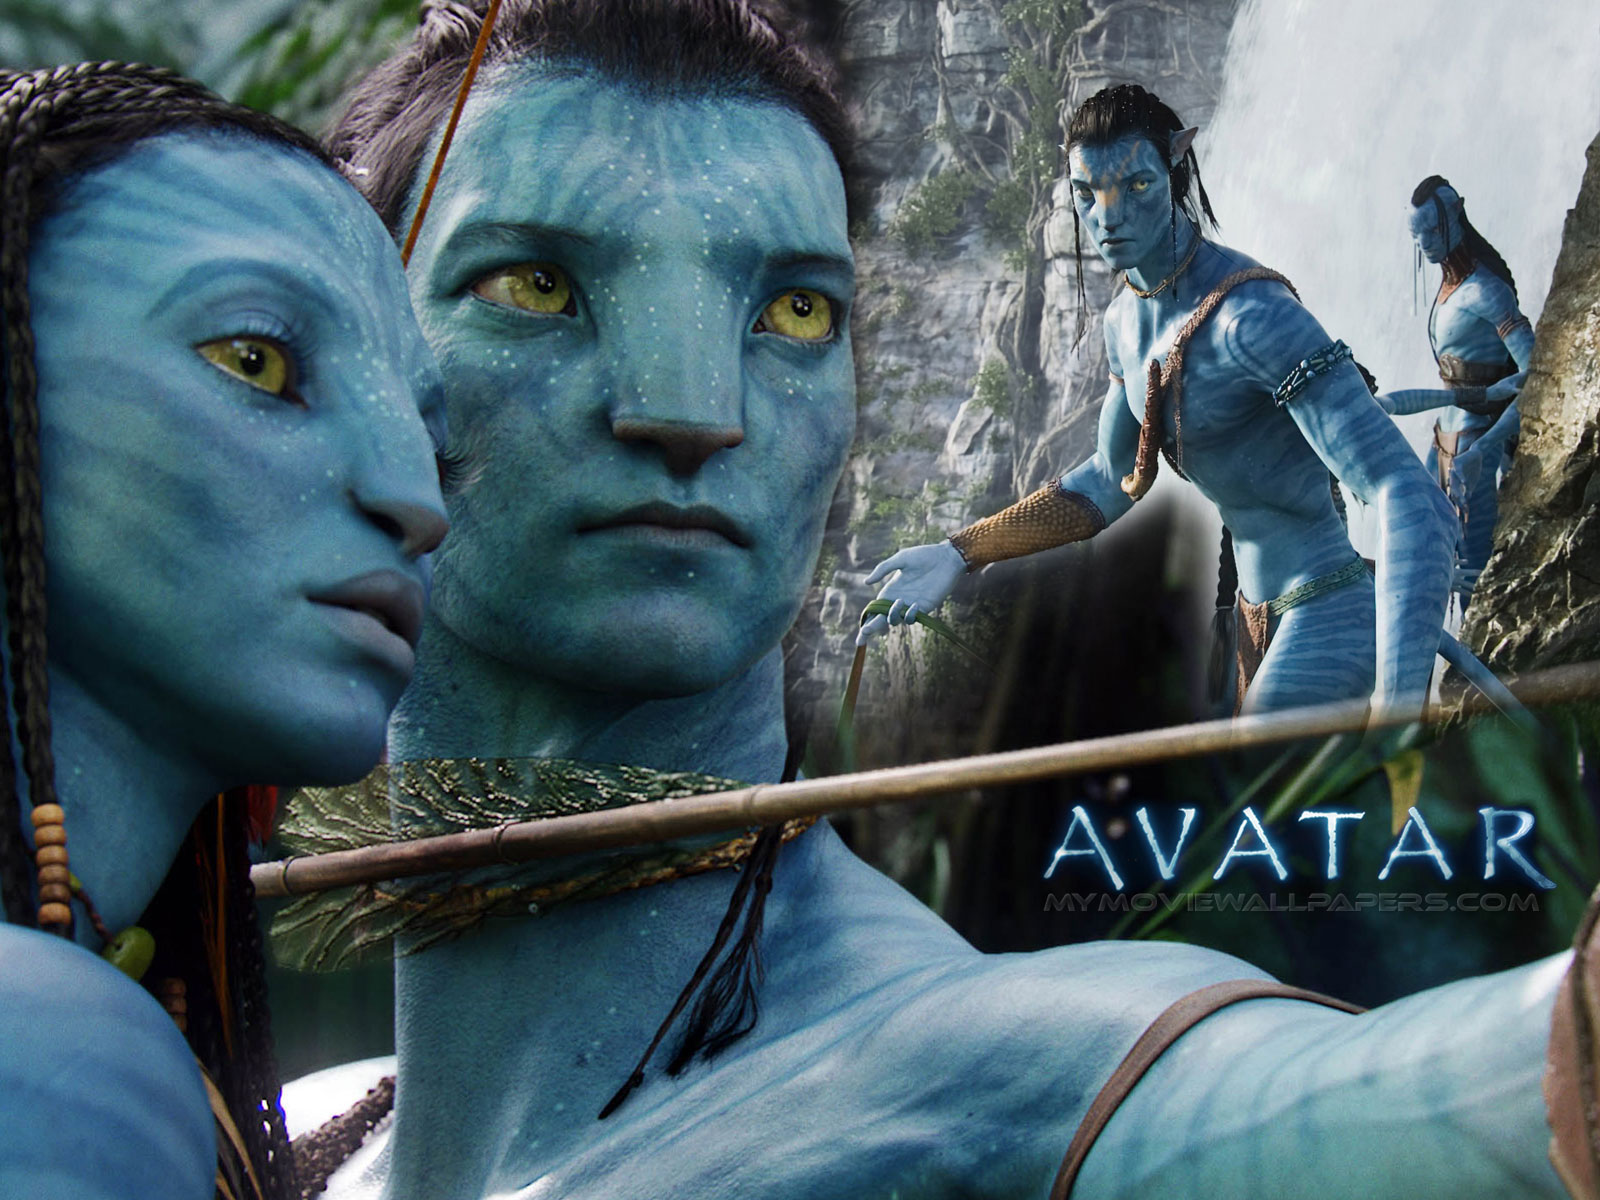 Free Hd Movie Download Point Avatar 2009 Free Hd Movie: Avatar Movie 3D Wallpapers HD